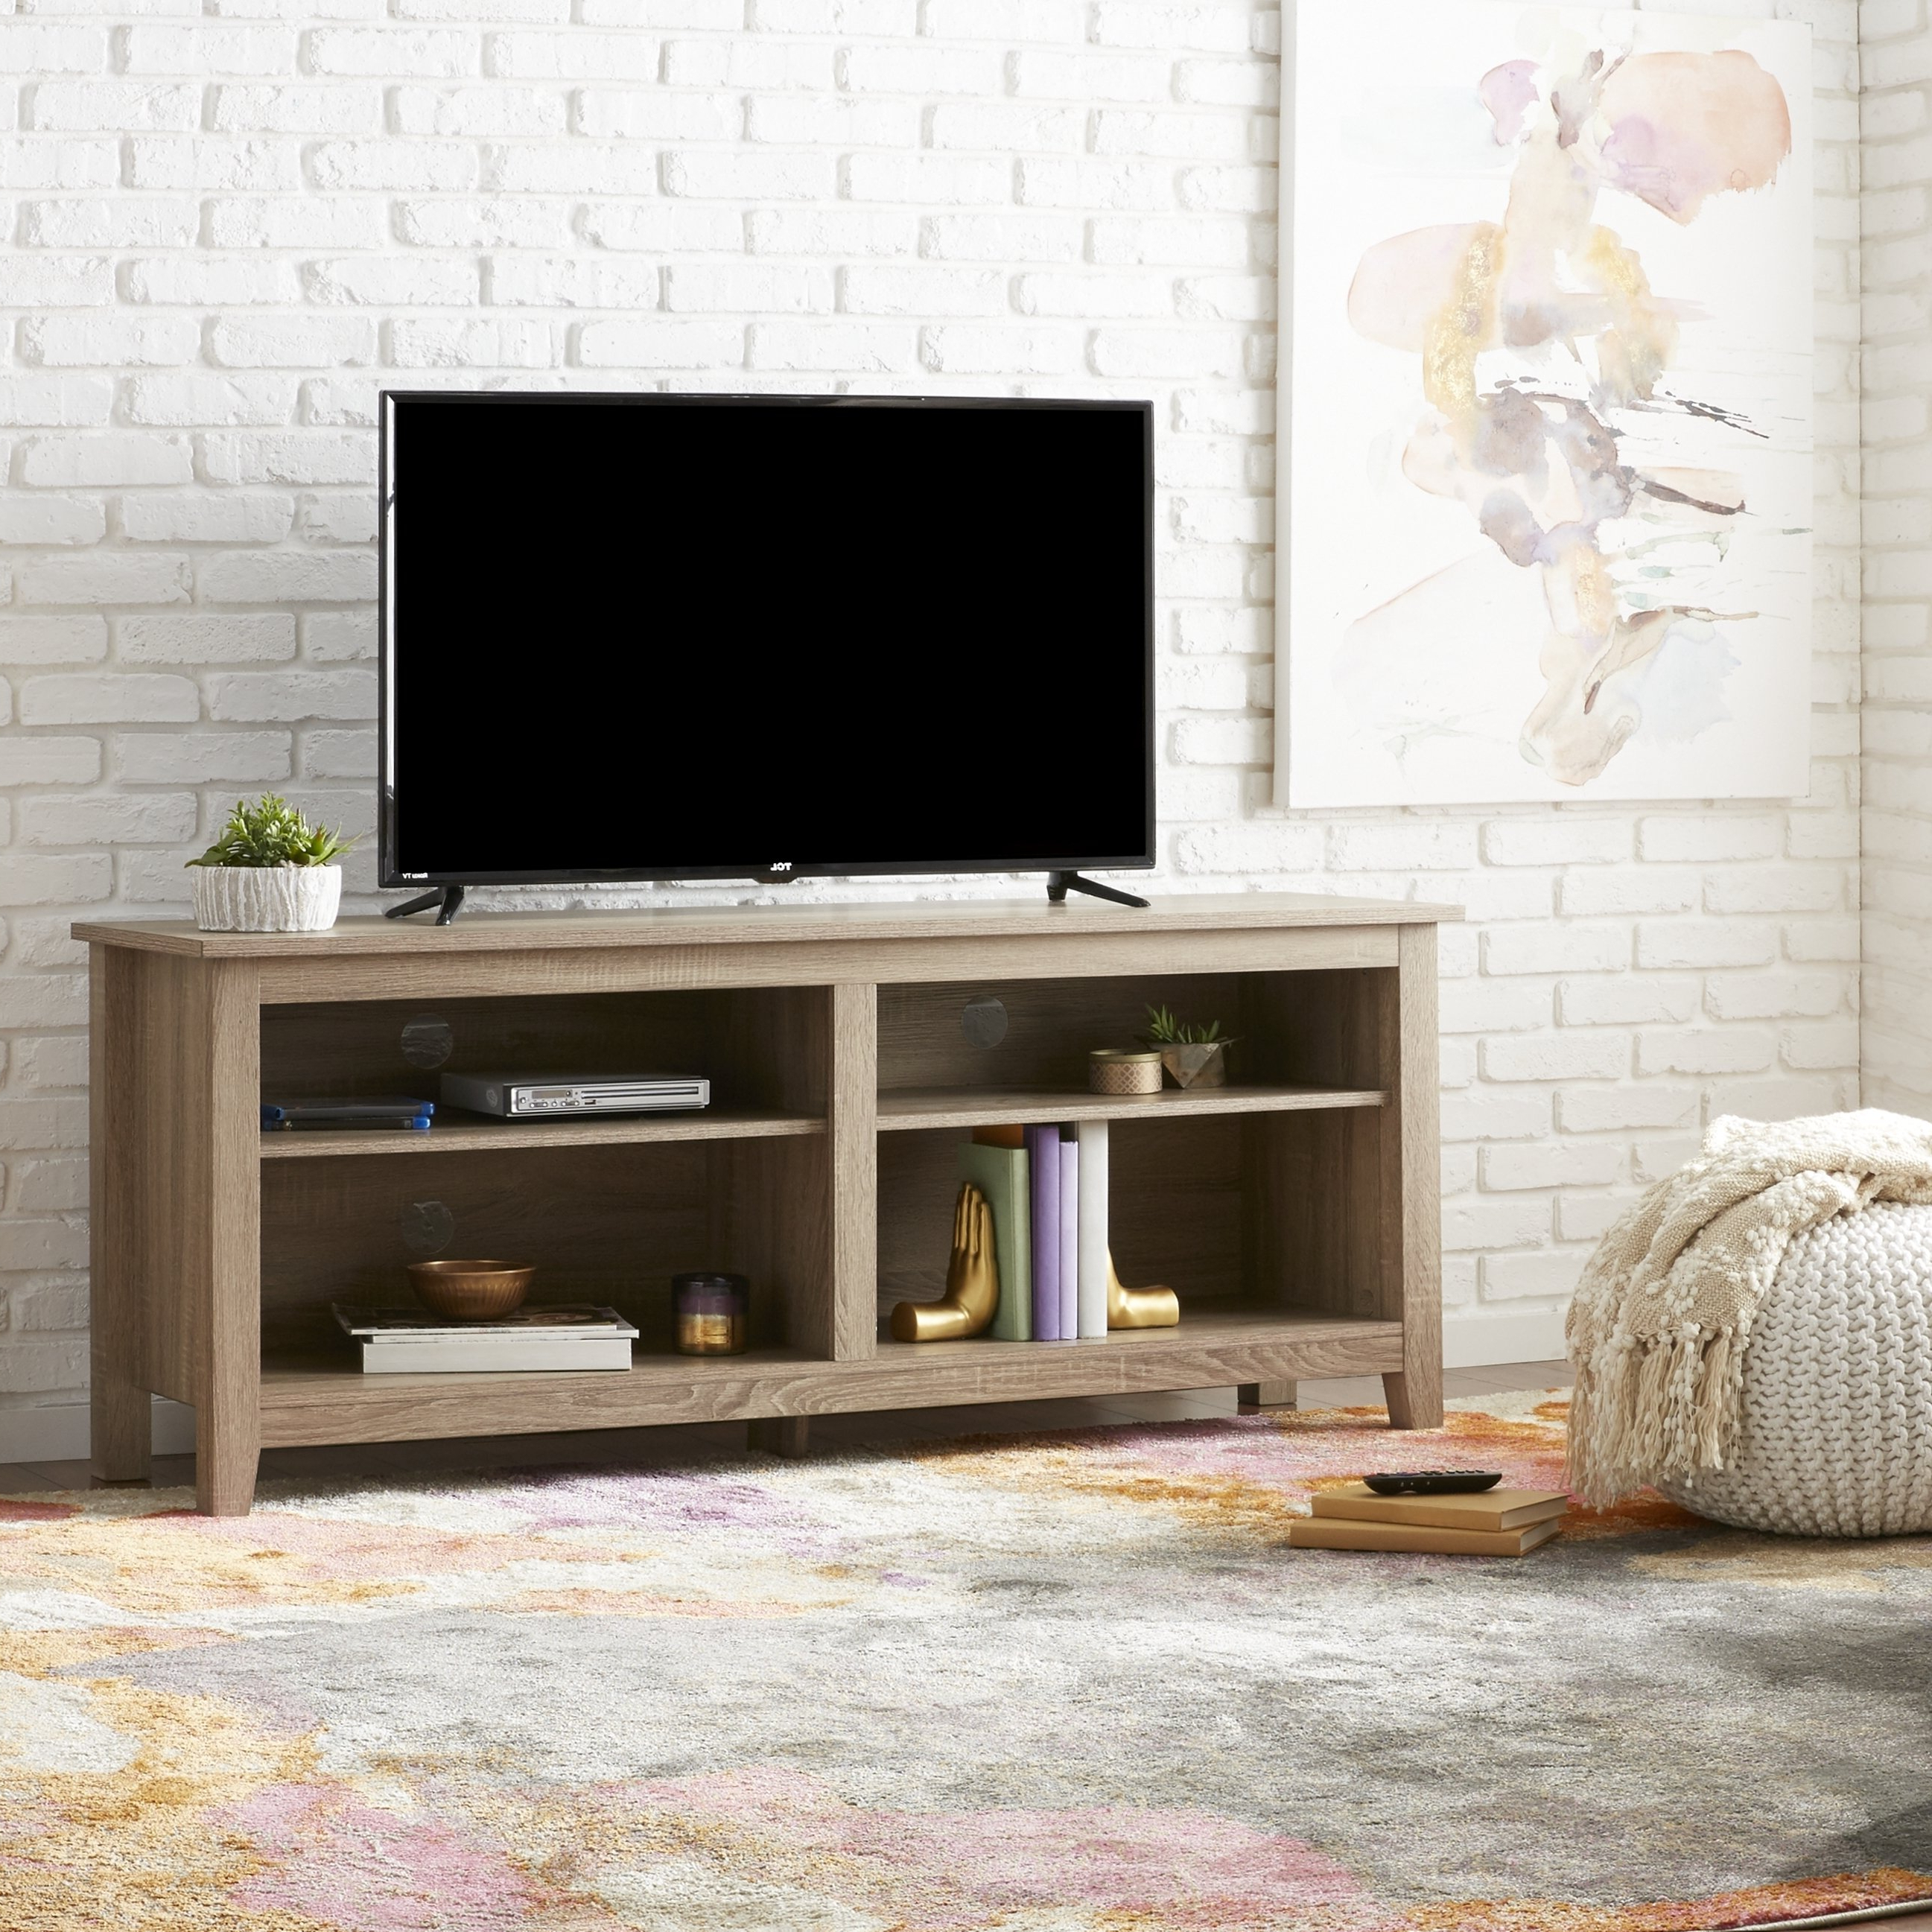 Abbott Driftwood 60 Inch Tv Stands For Fashionable Shop 58 Inch Driftwood Tv Stand – Free Shipping On Orders Over $ (View 4 of 20)